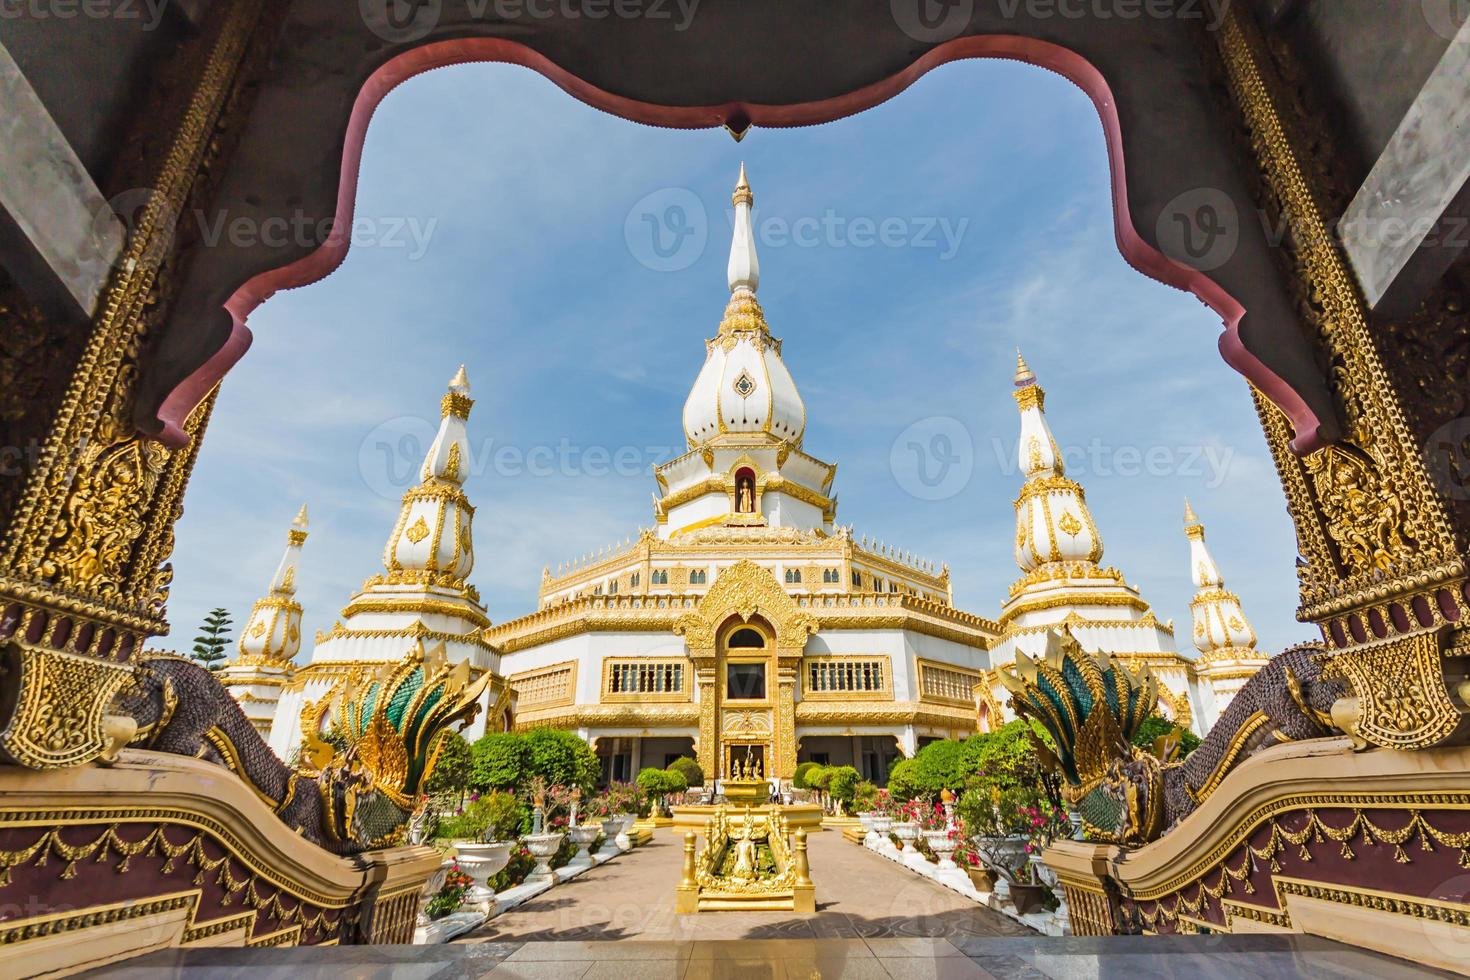 Thaise tample foto